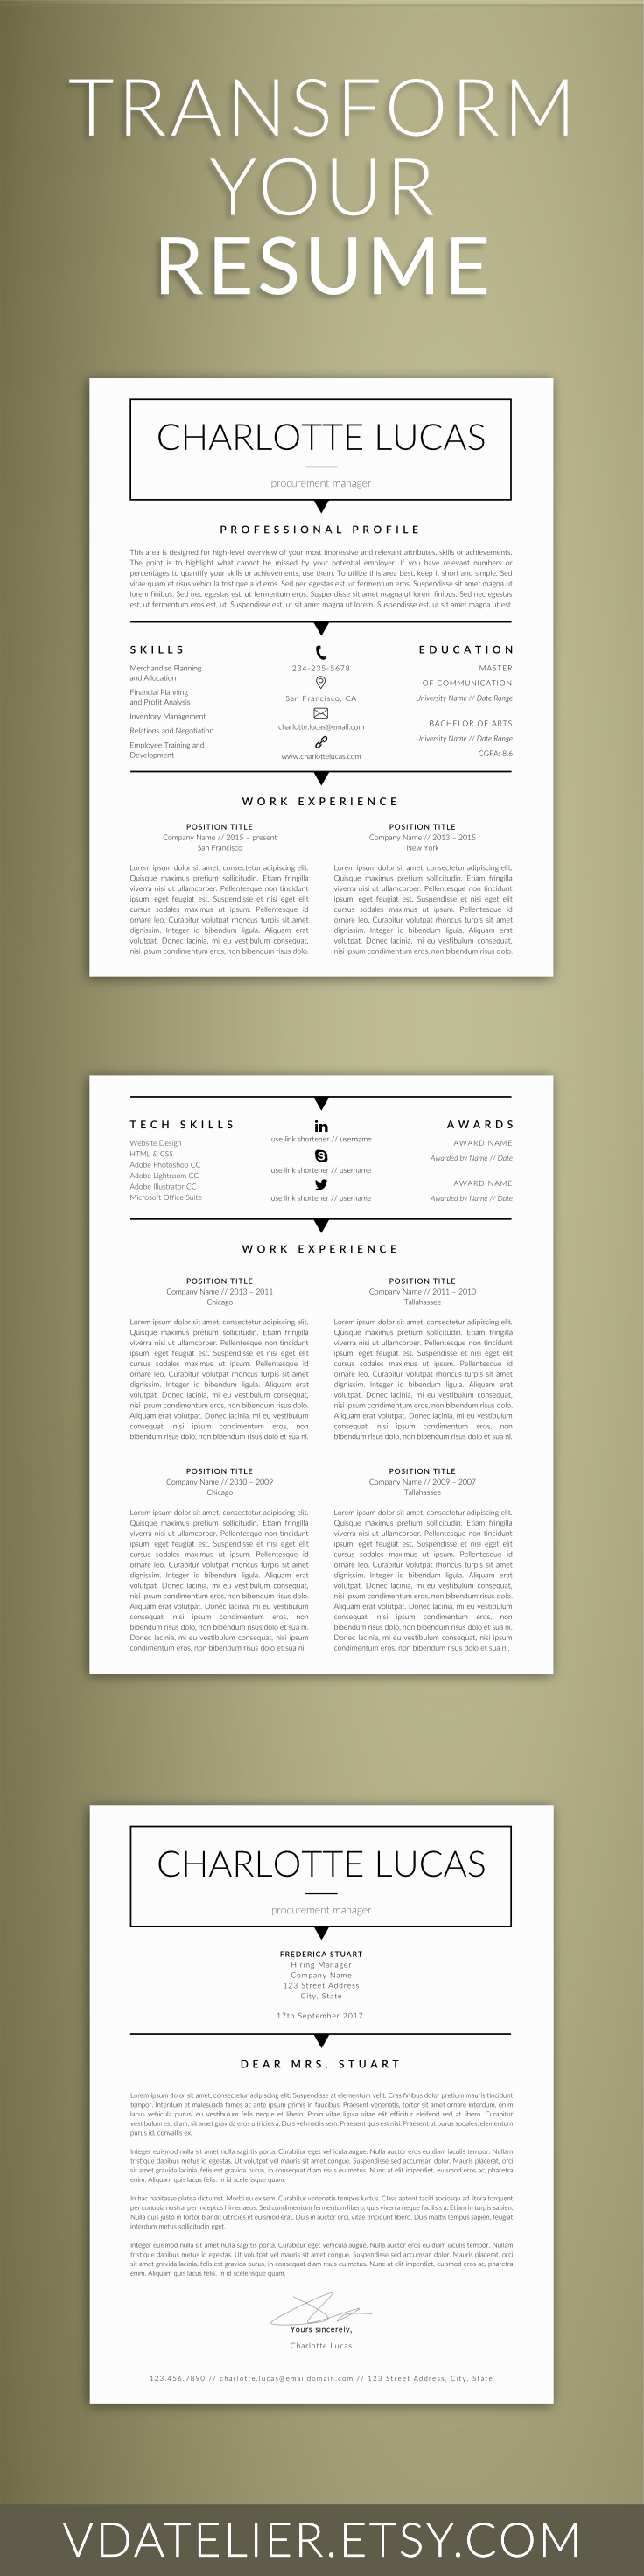 minimalist resume template for word professional men resume cover letter curriculum vitae us letter a4 123 page resume. Resume Example. Resume CV Cover Letter